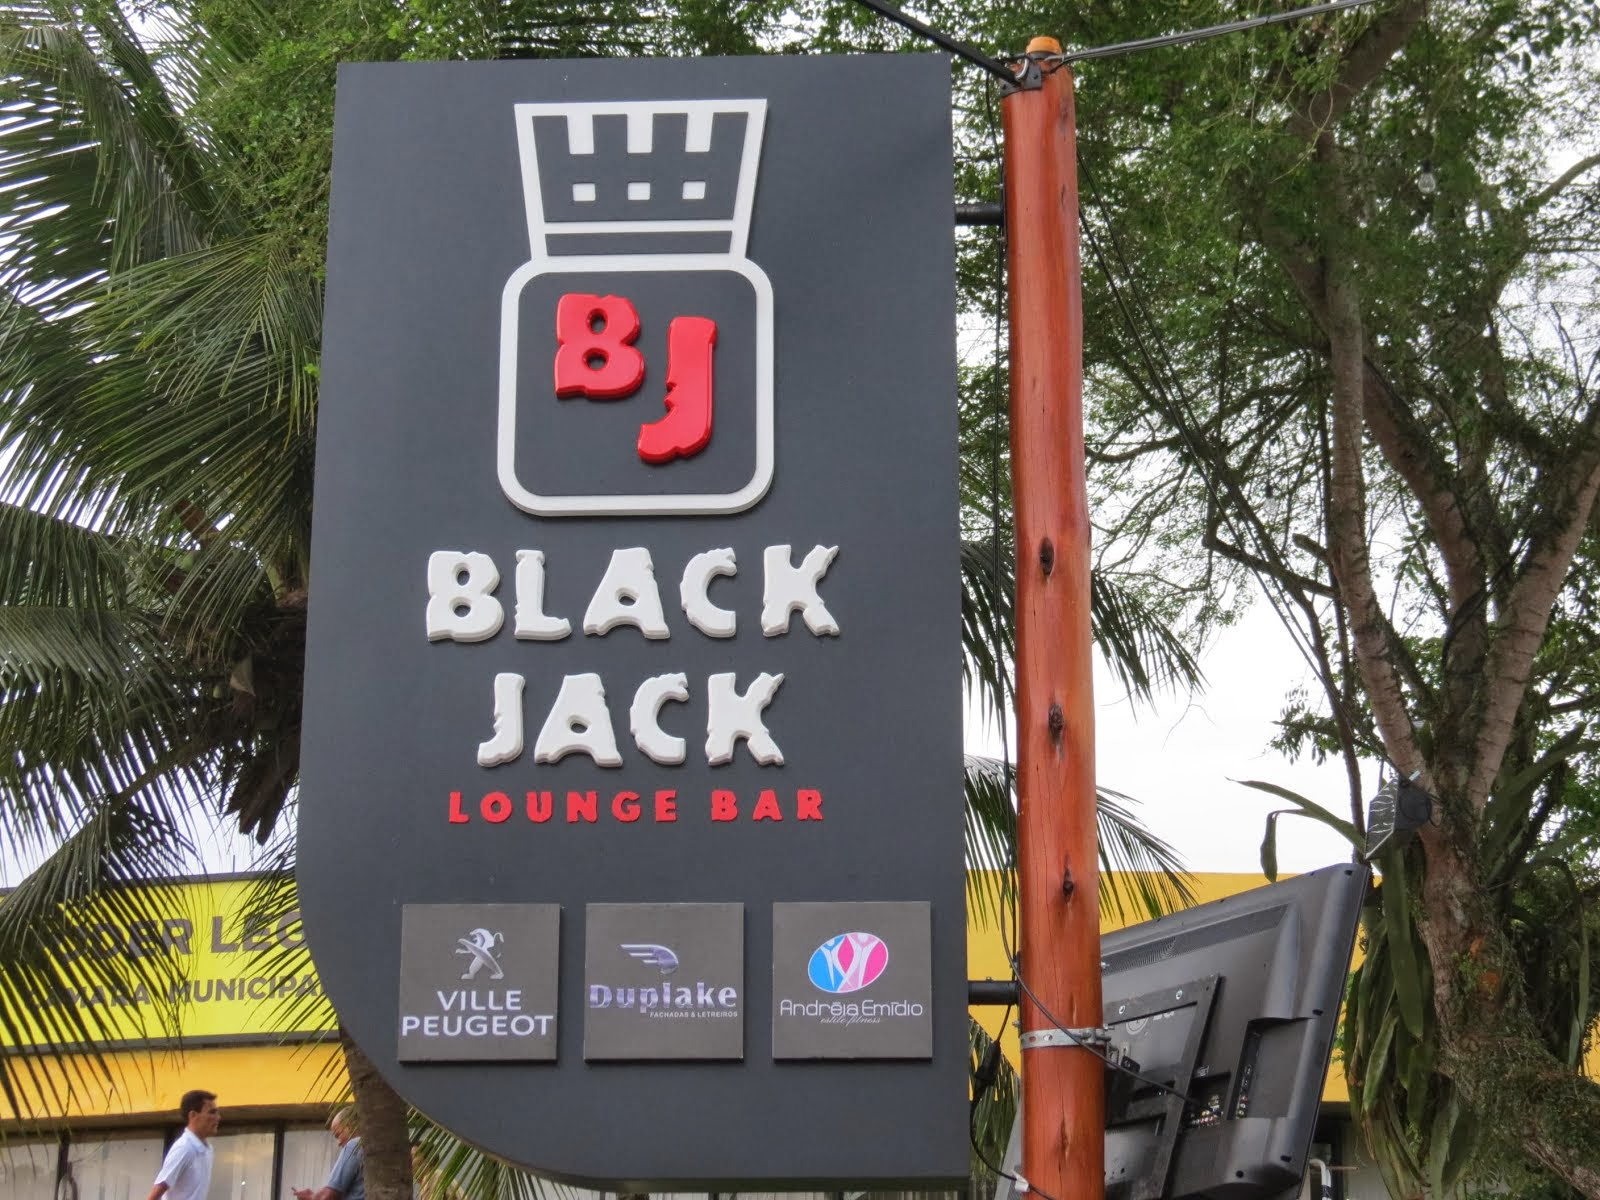 BLACK JACK Lounge Bar